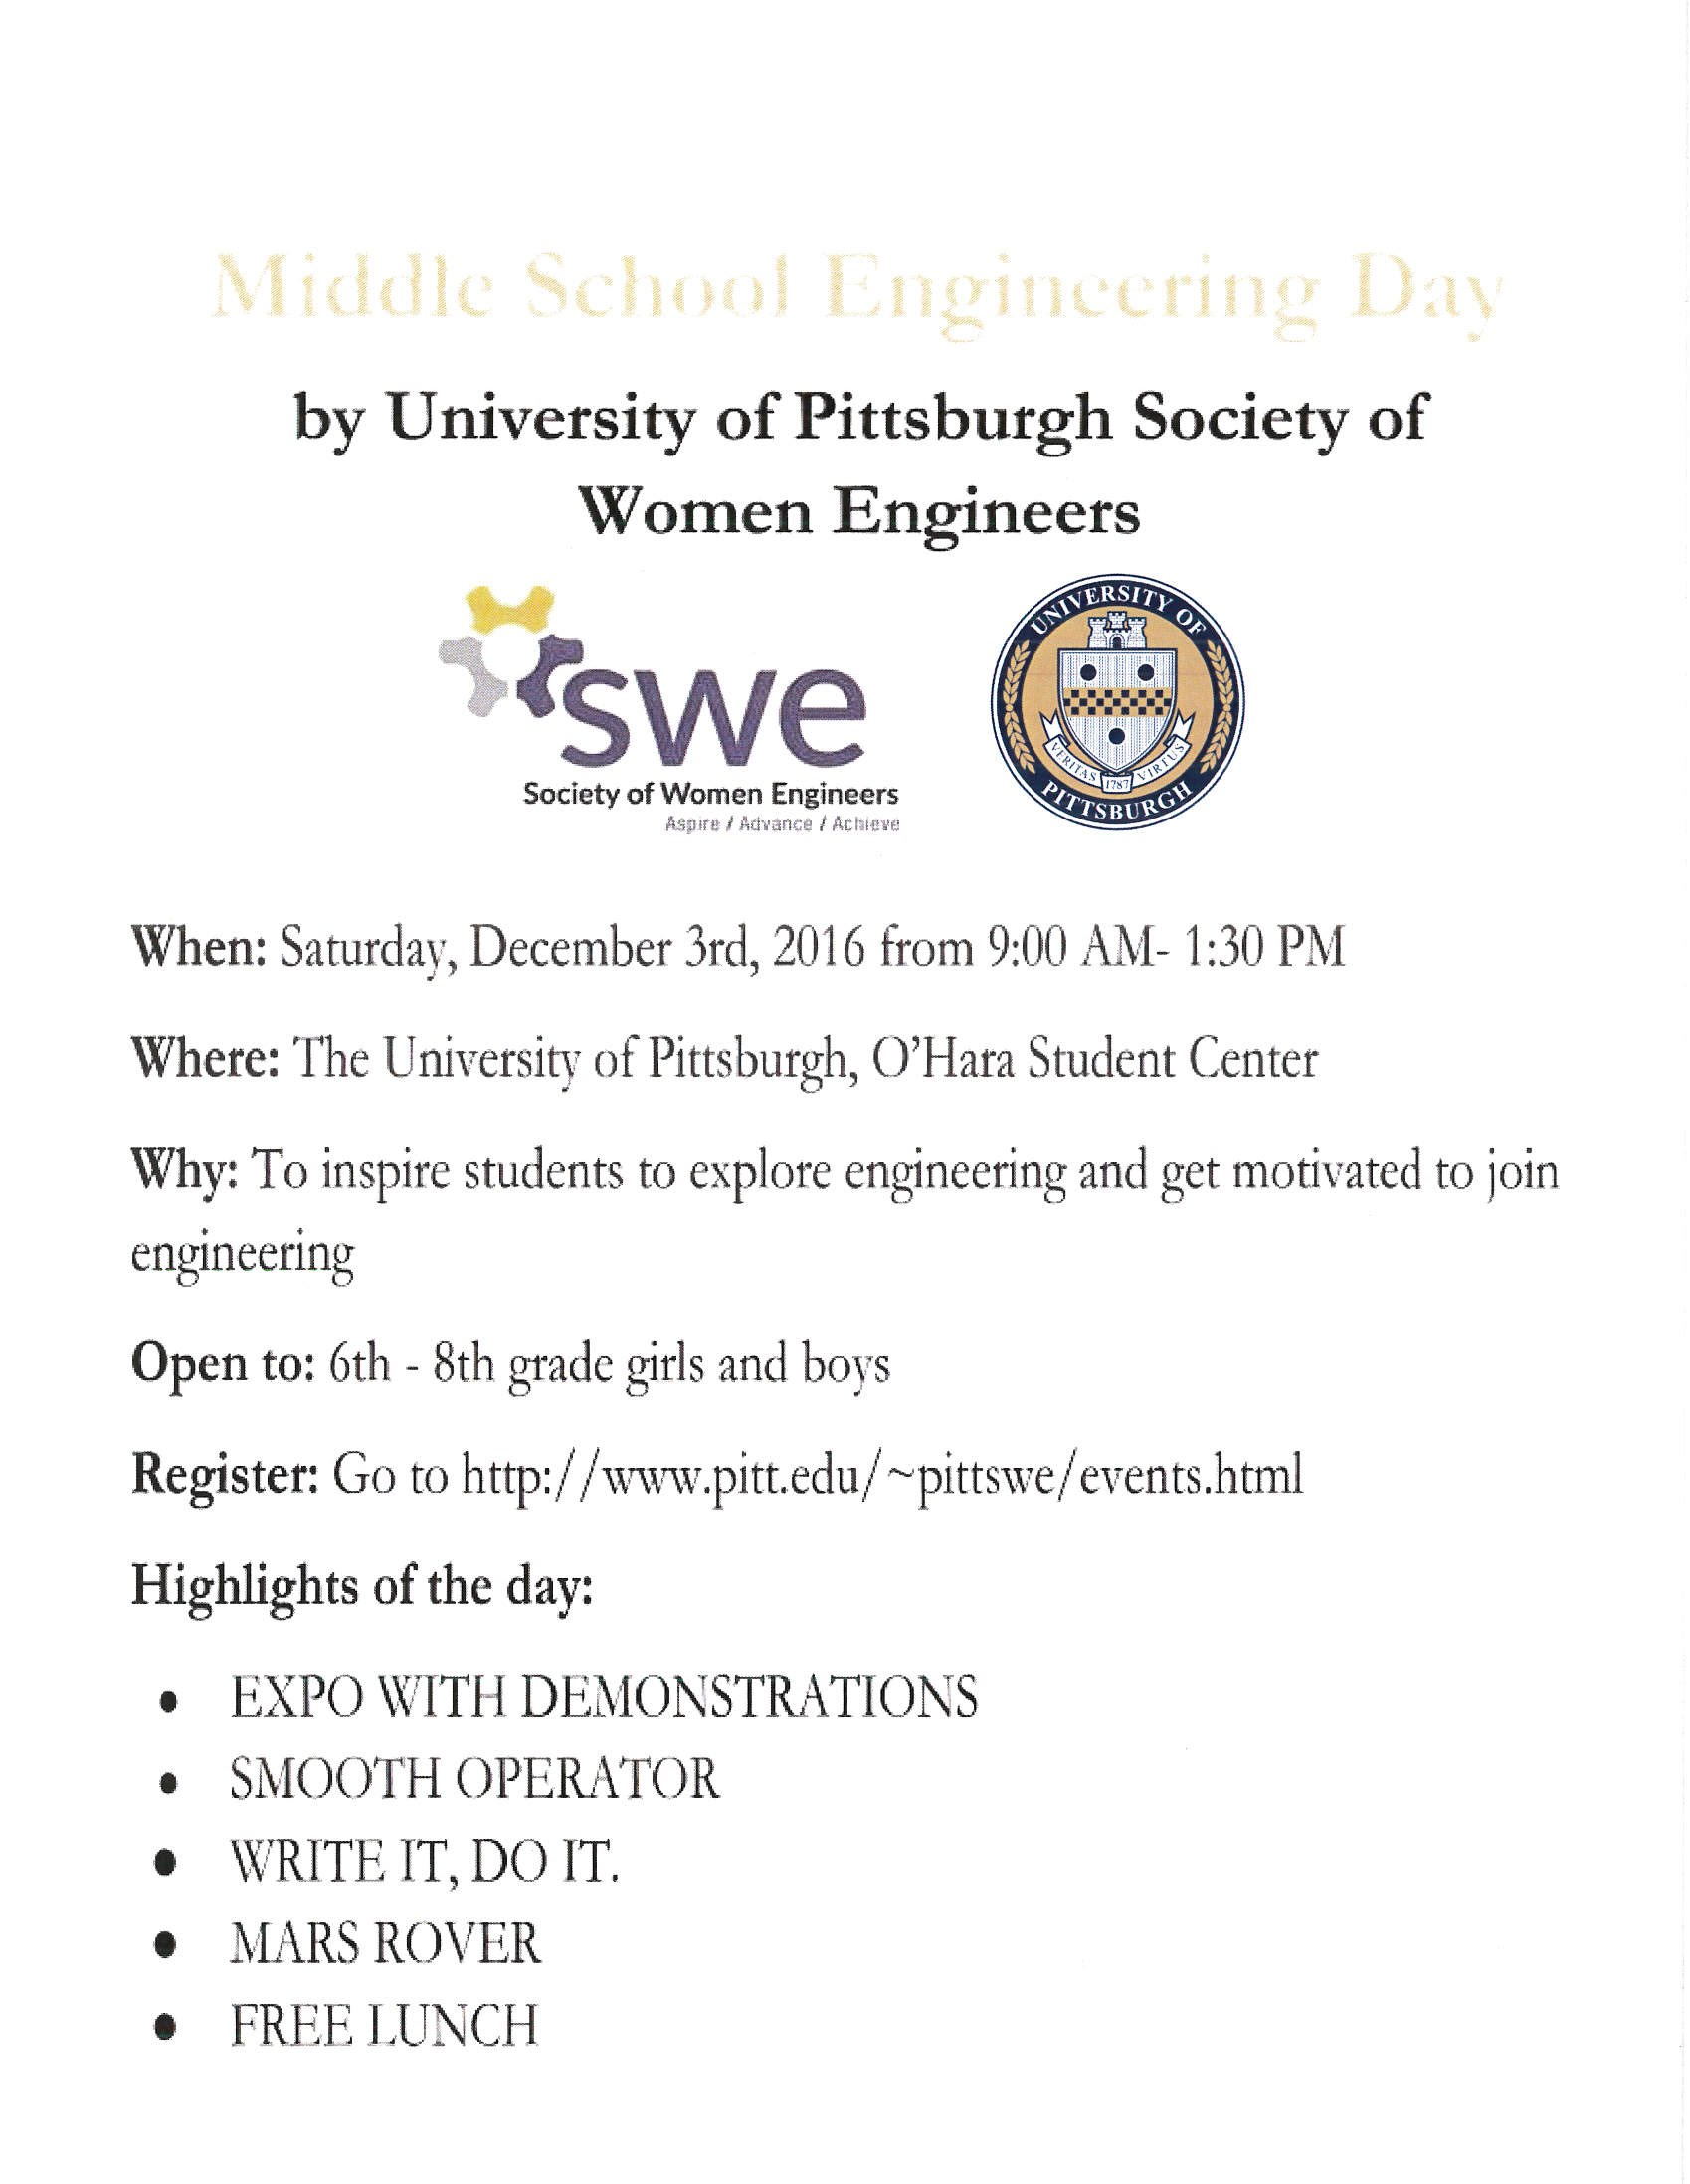 https://www.eventbrite.com/e/pitt-swe-middle-school-engineering-day-tickets-29329096116